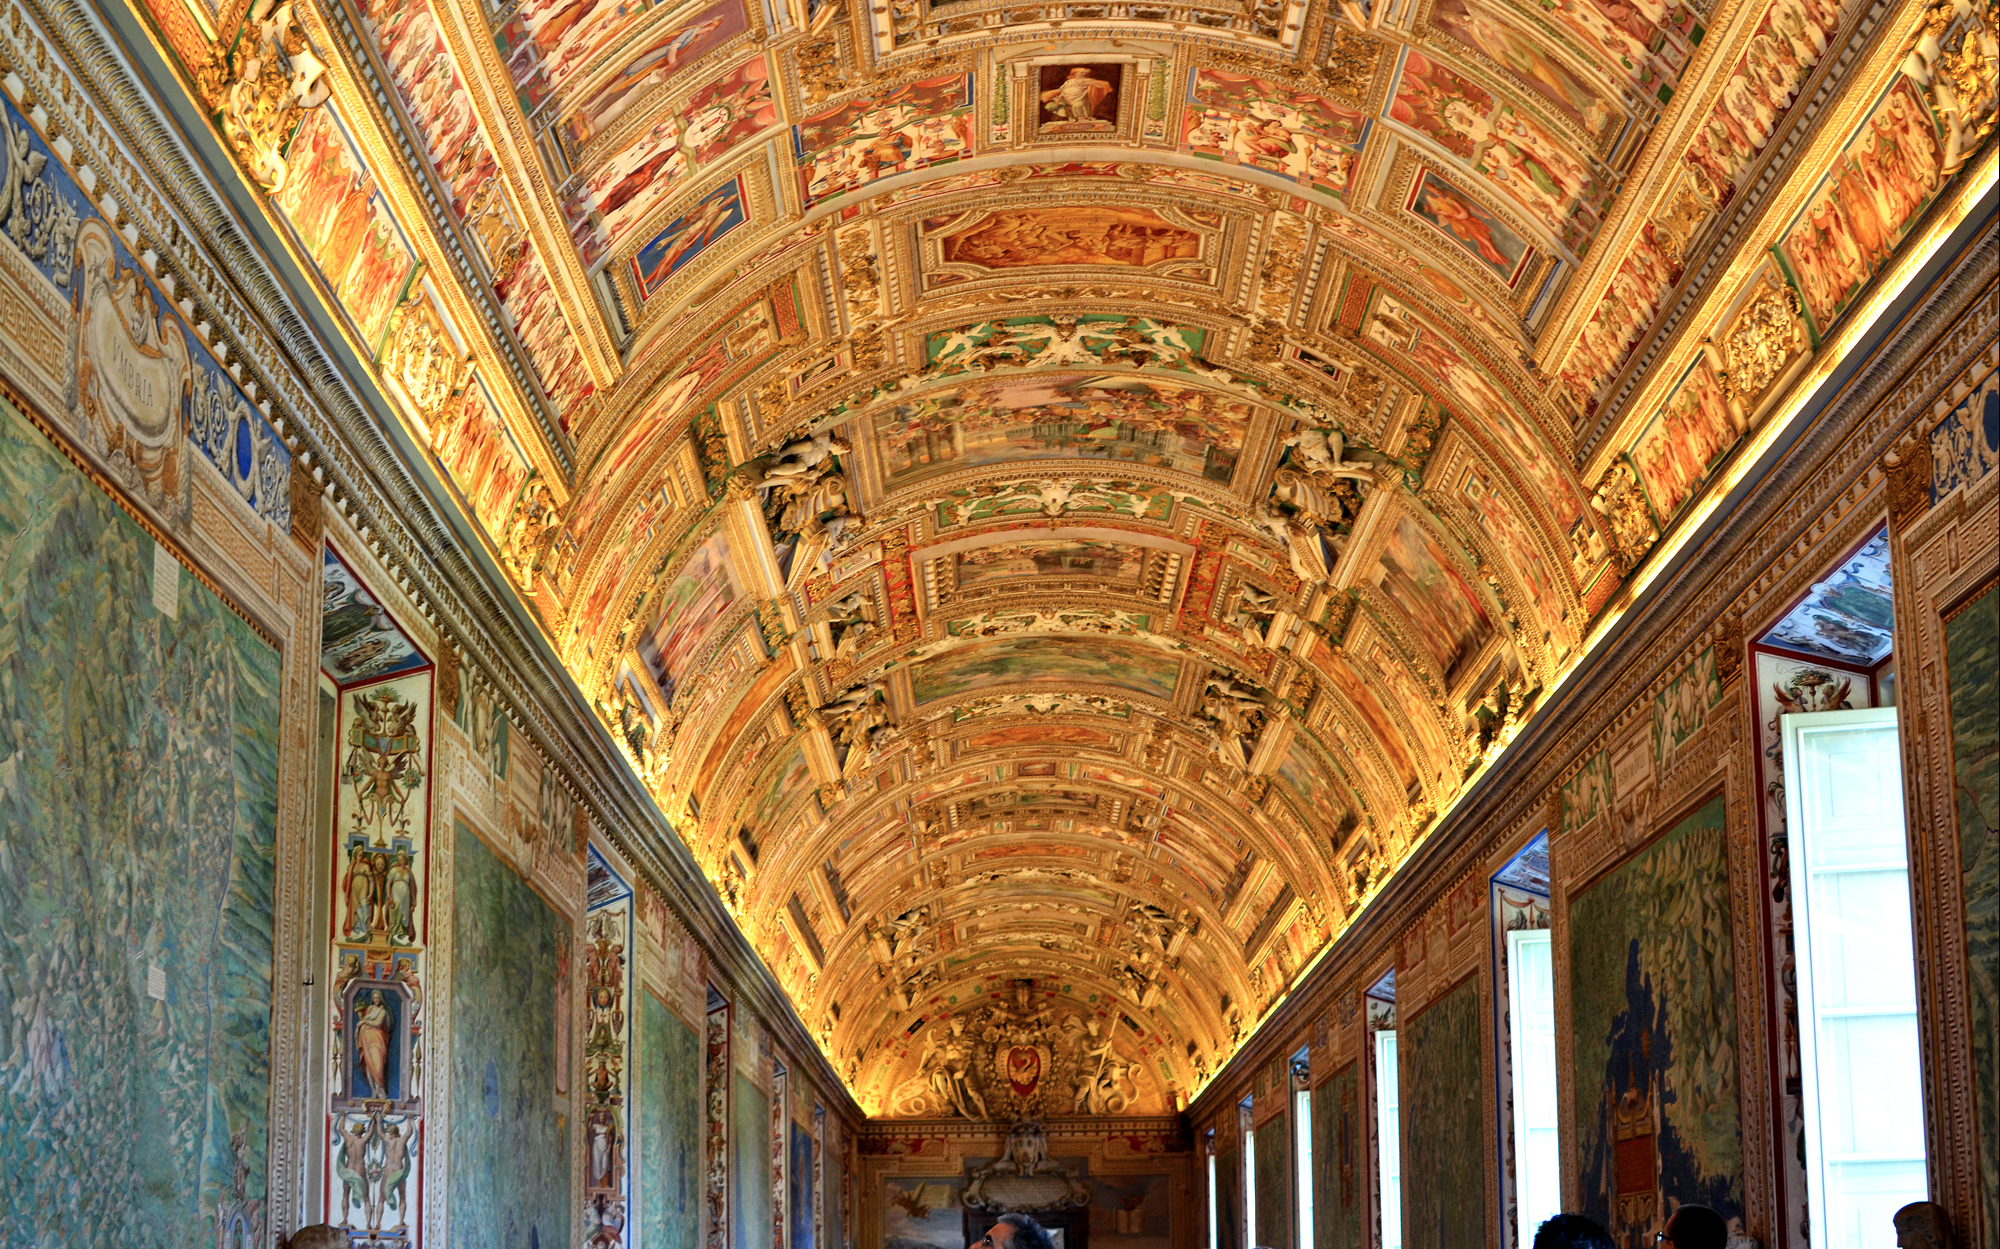 Billet Vatican Coupe File Vatican Museum Sistine Chapel Skip The Line Ticket 2 Day Hop On Hop Off Pass